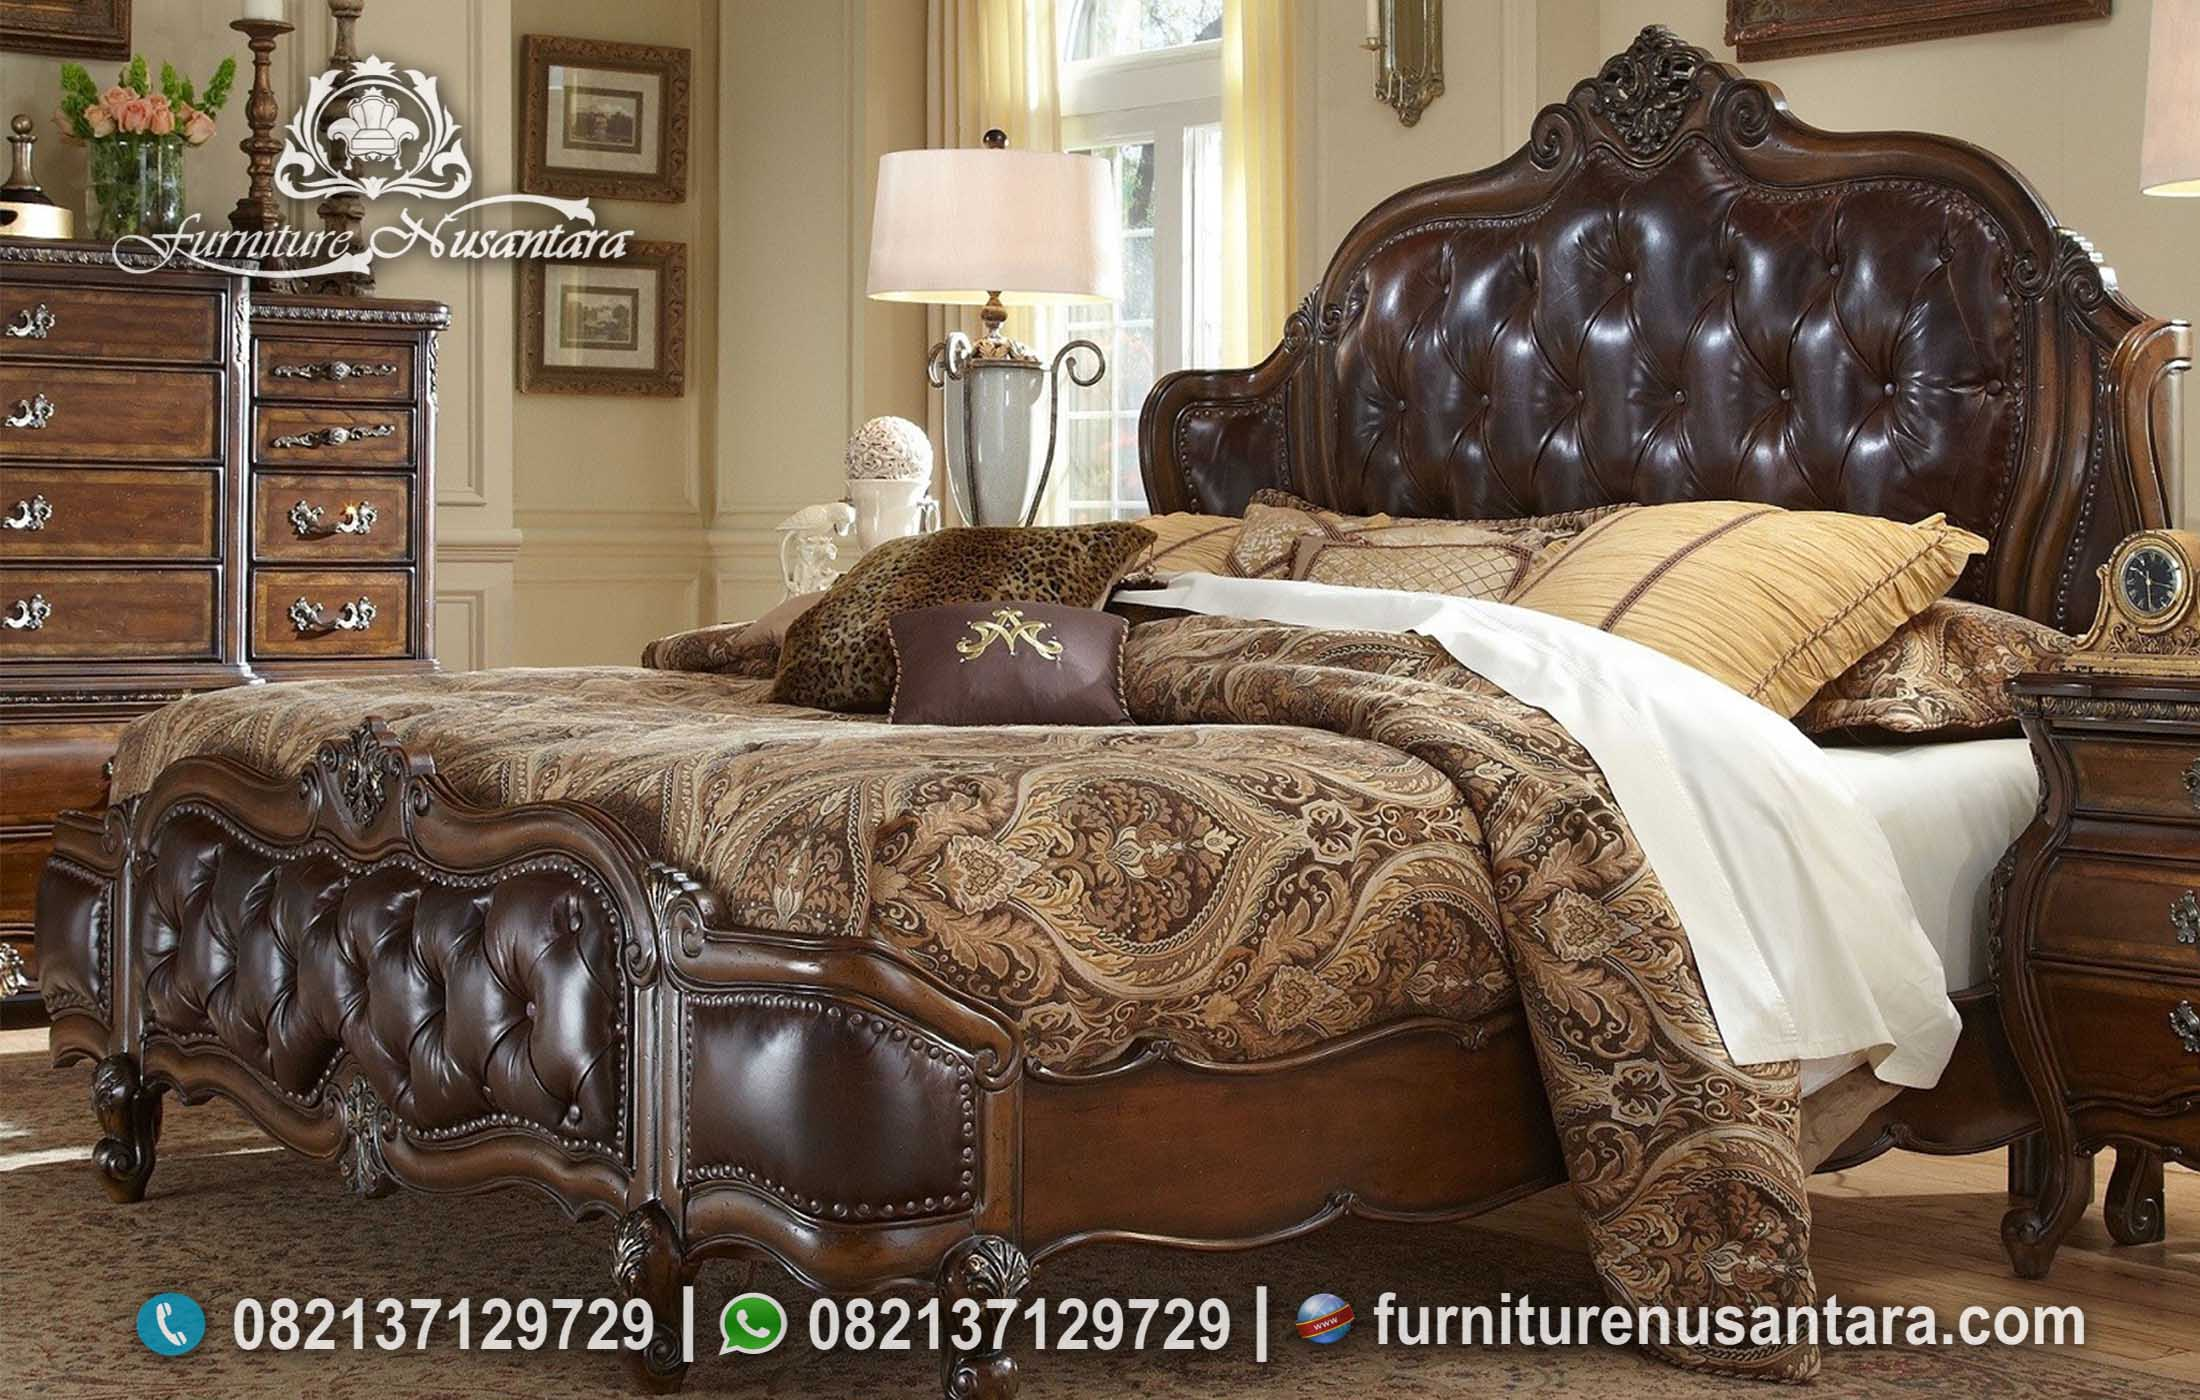 Jual Kamar Set Jati KS-46, Furniture Nusantara